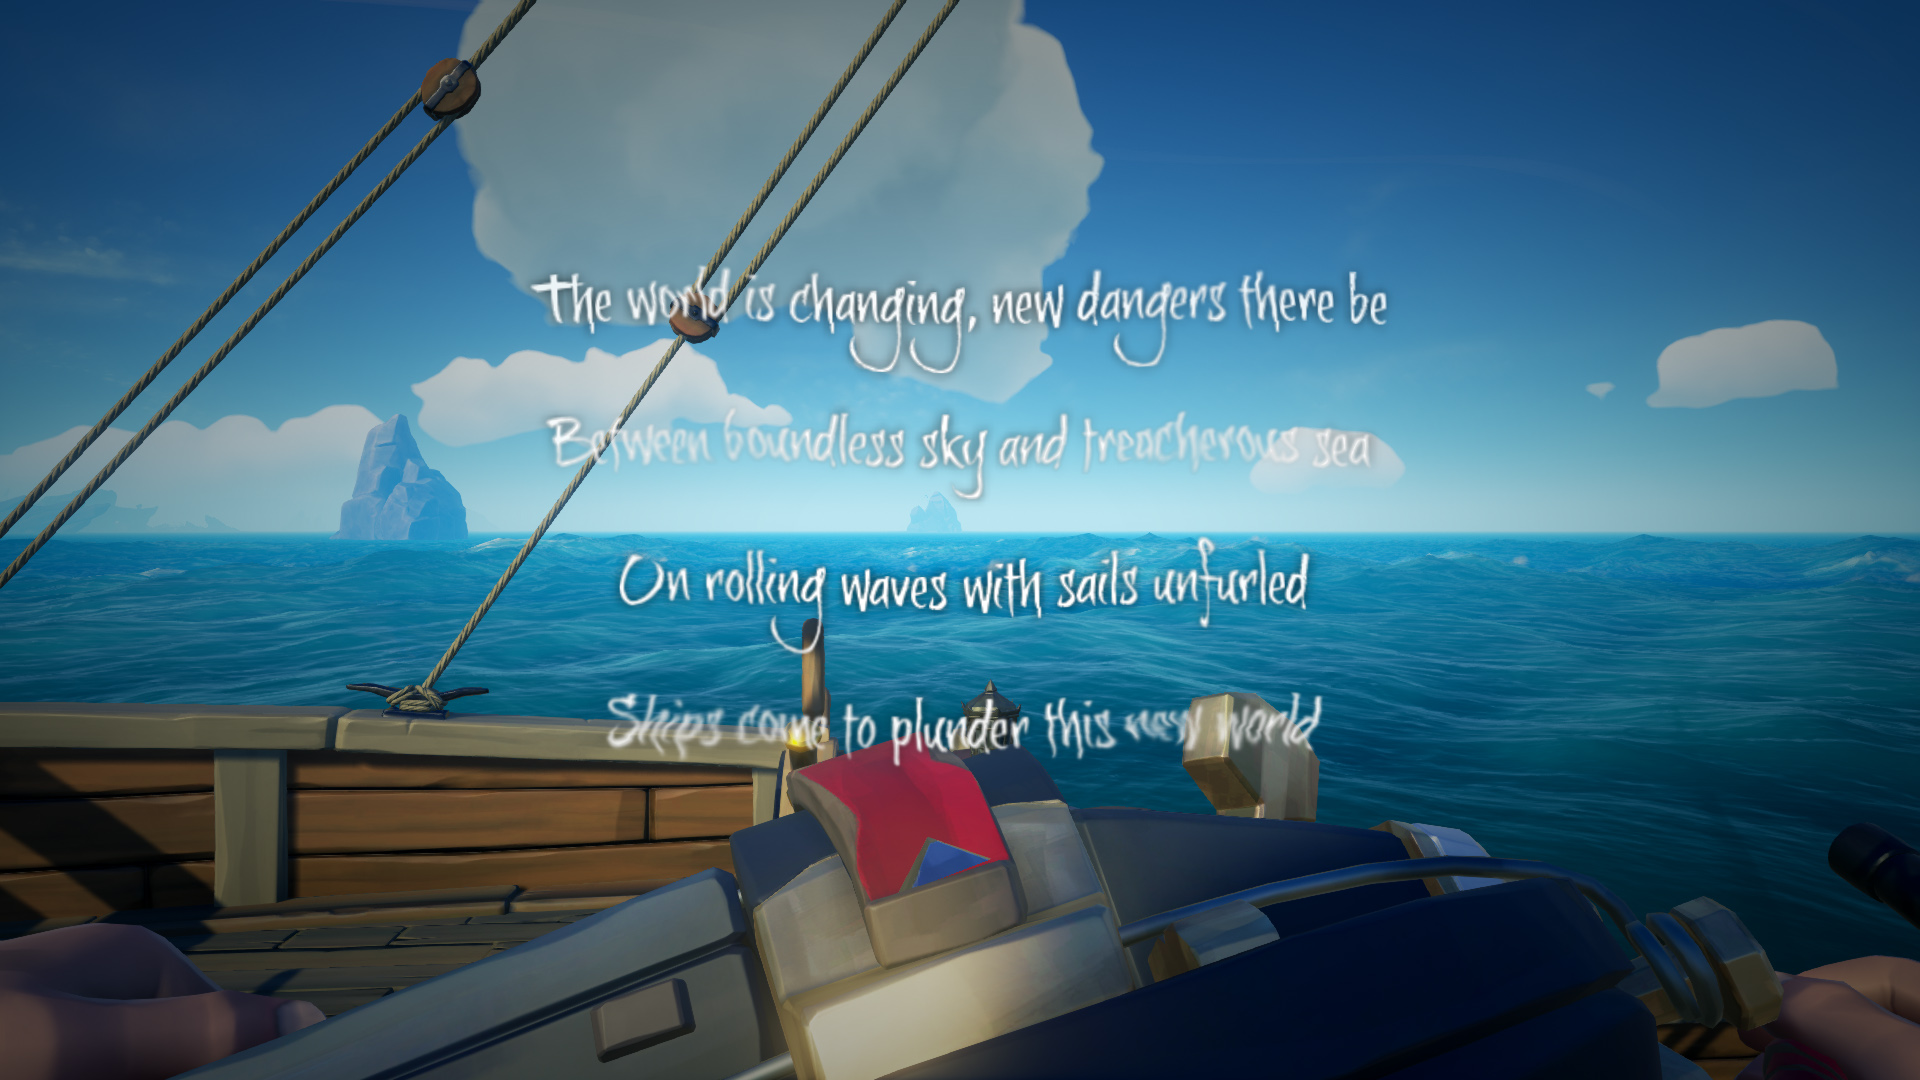 What Does The World is Changing Mean in Sea of Thieves